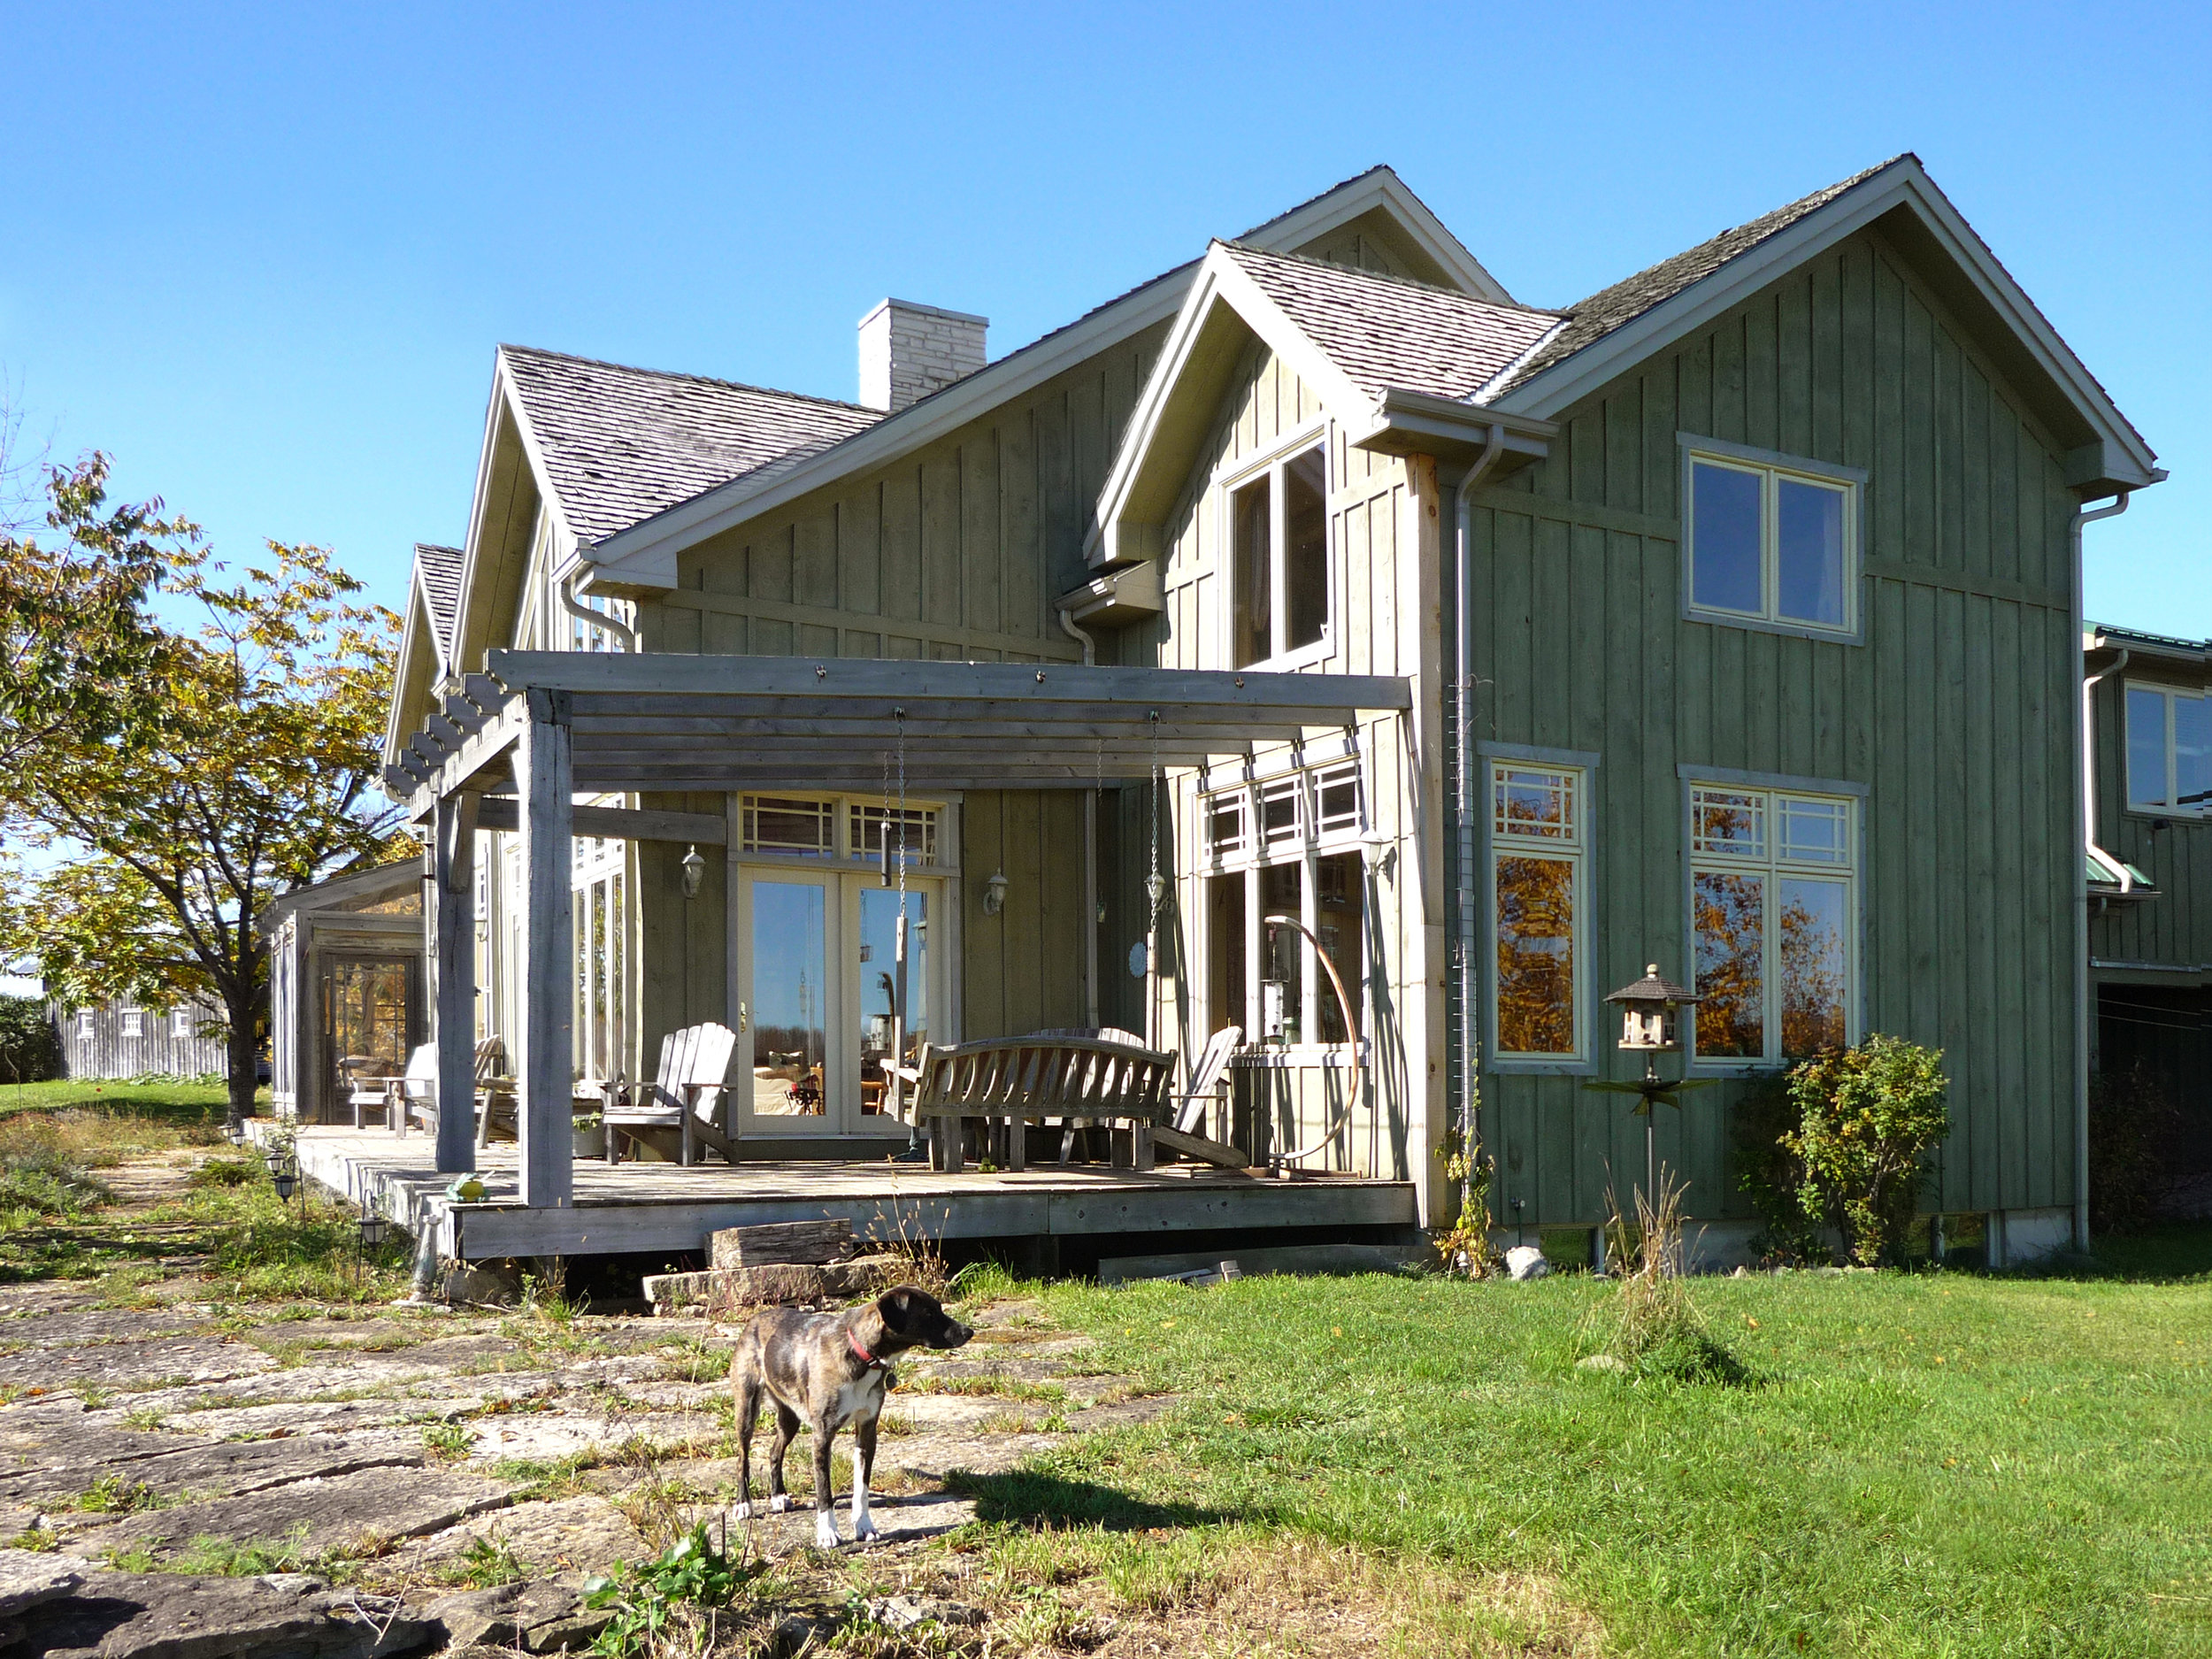 Frog's Hollow  Reclaimed Barn to Off-grid, Passive Solar Residence